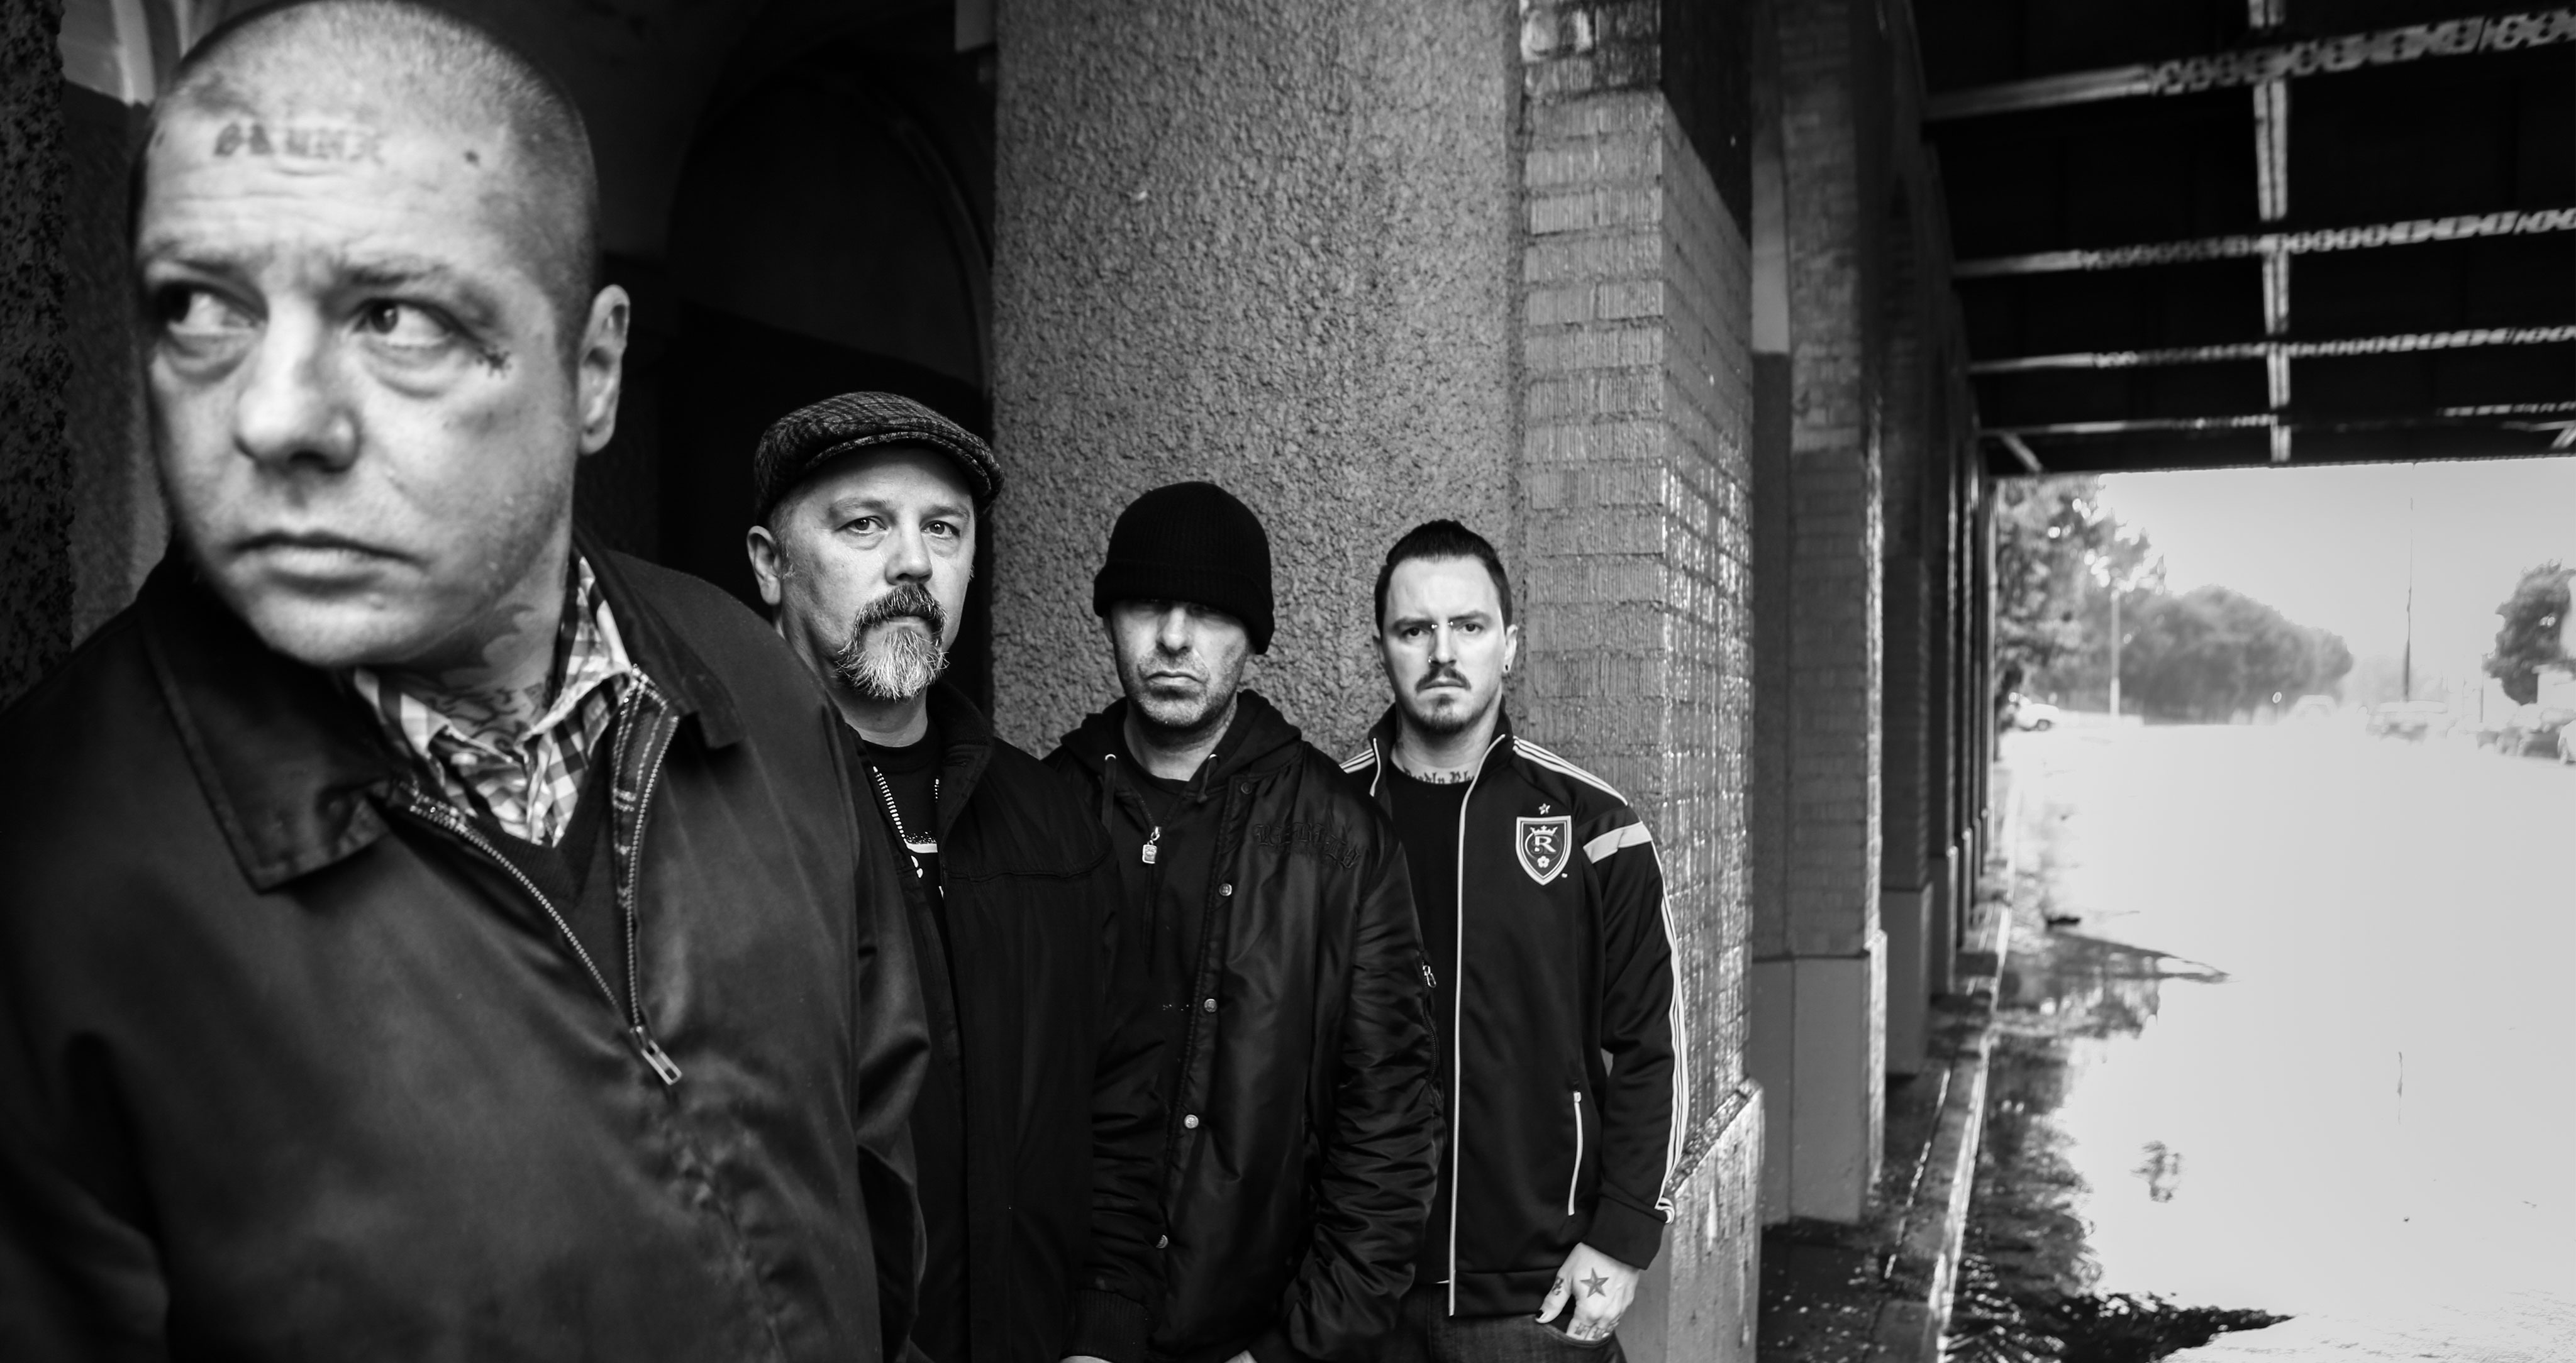 rancid wallpapers high quality download free